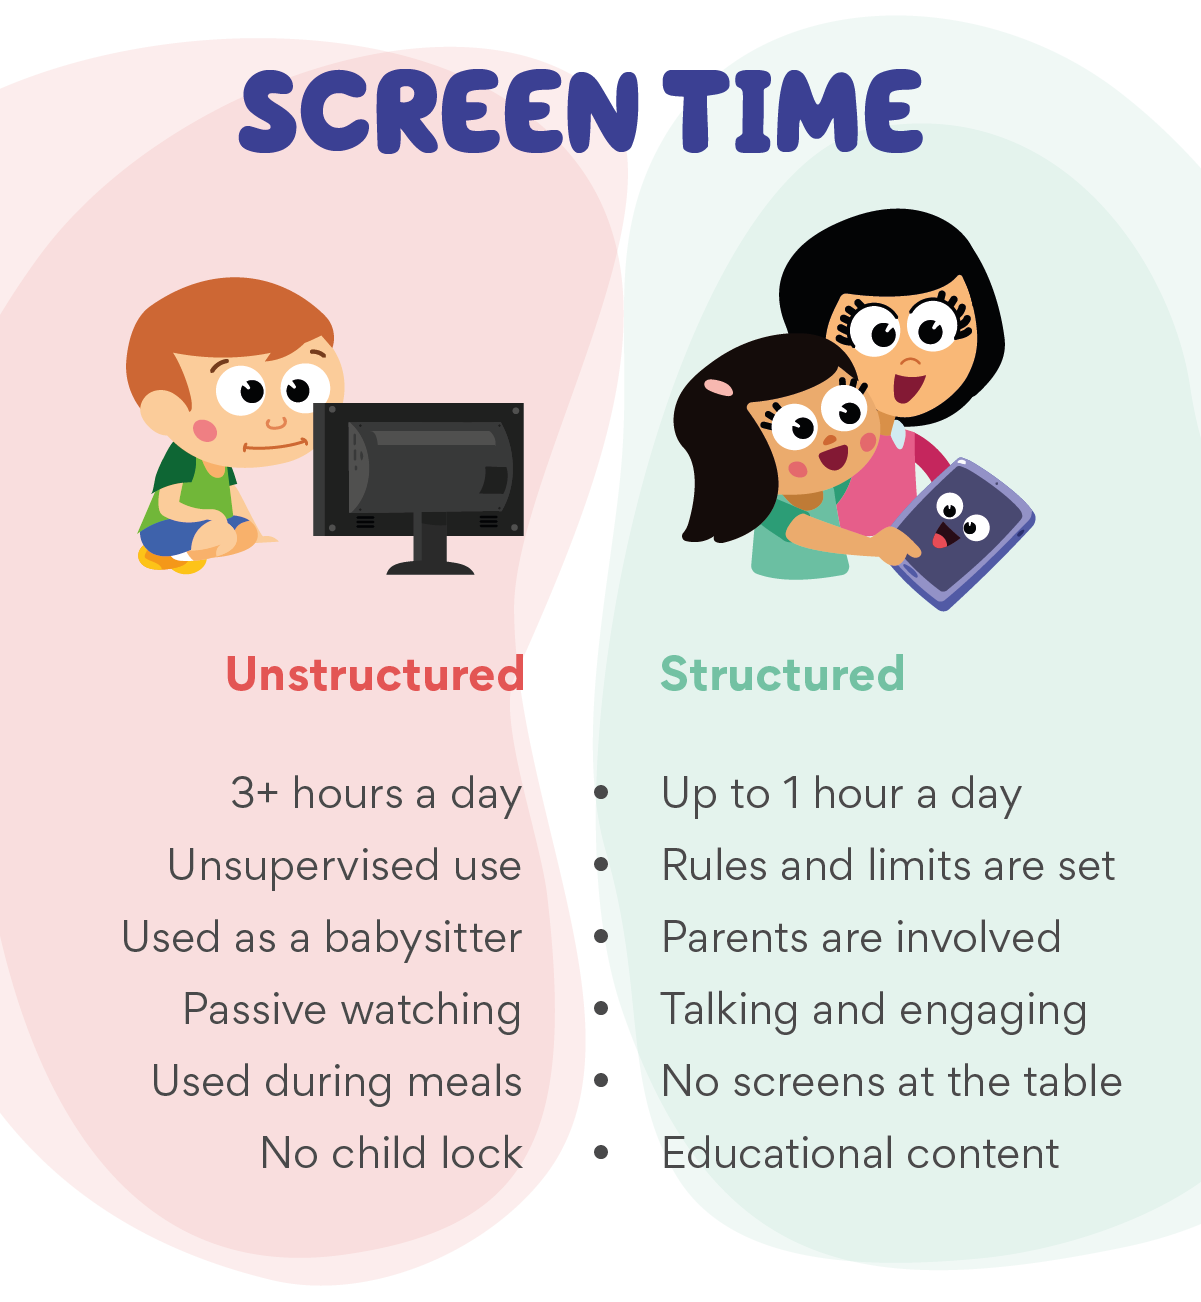 Speech Blubs is an example of structured screen time